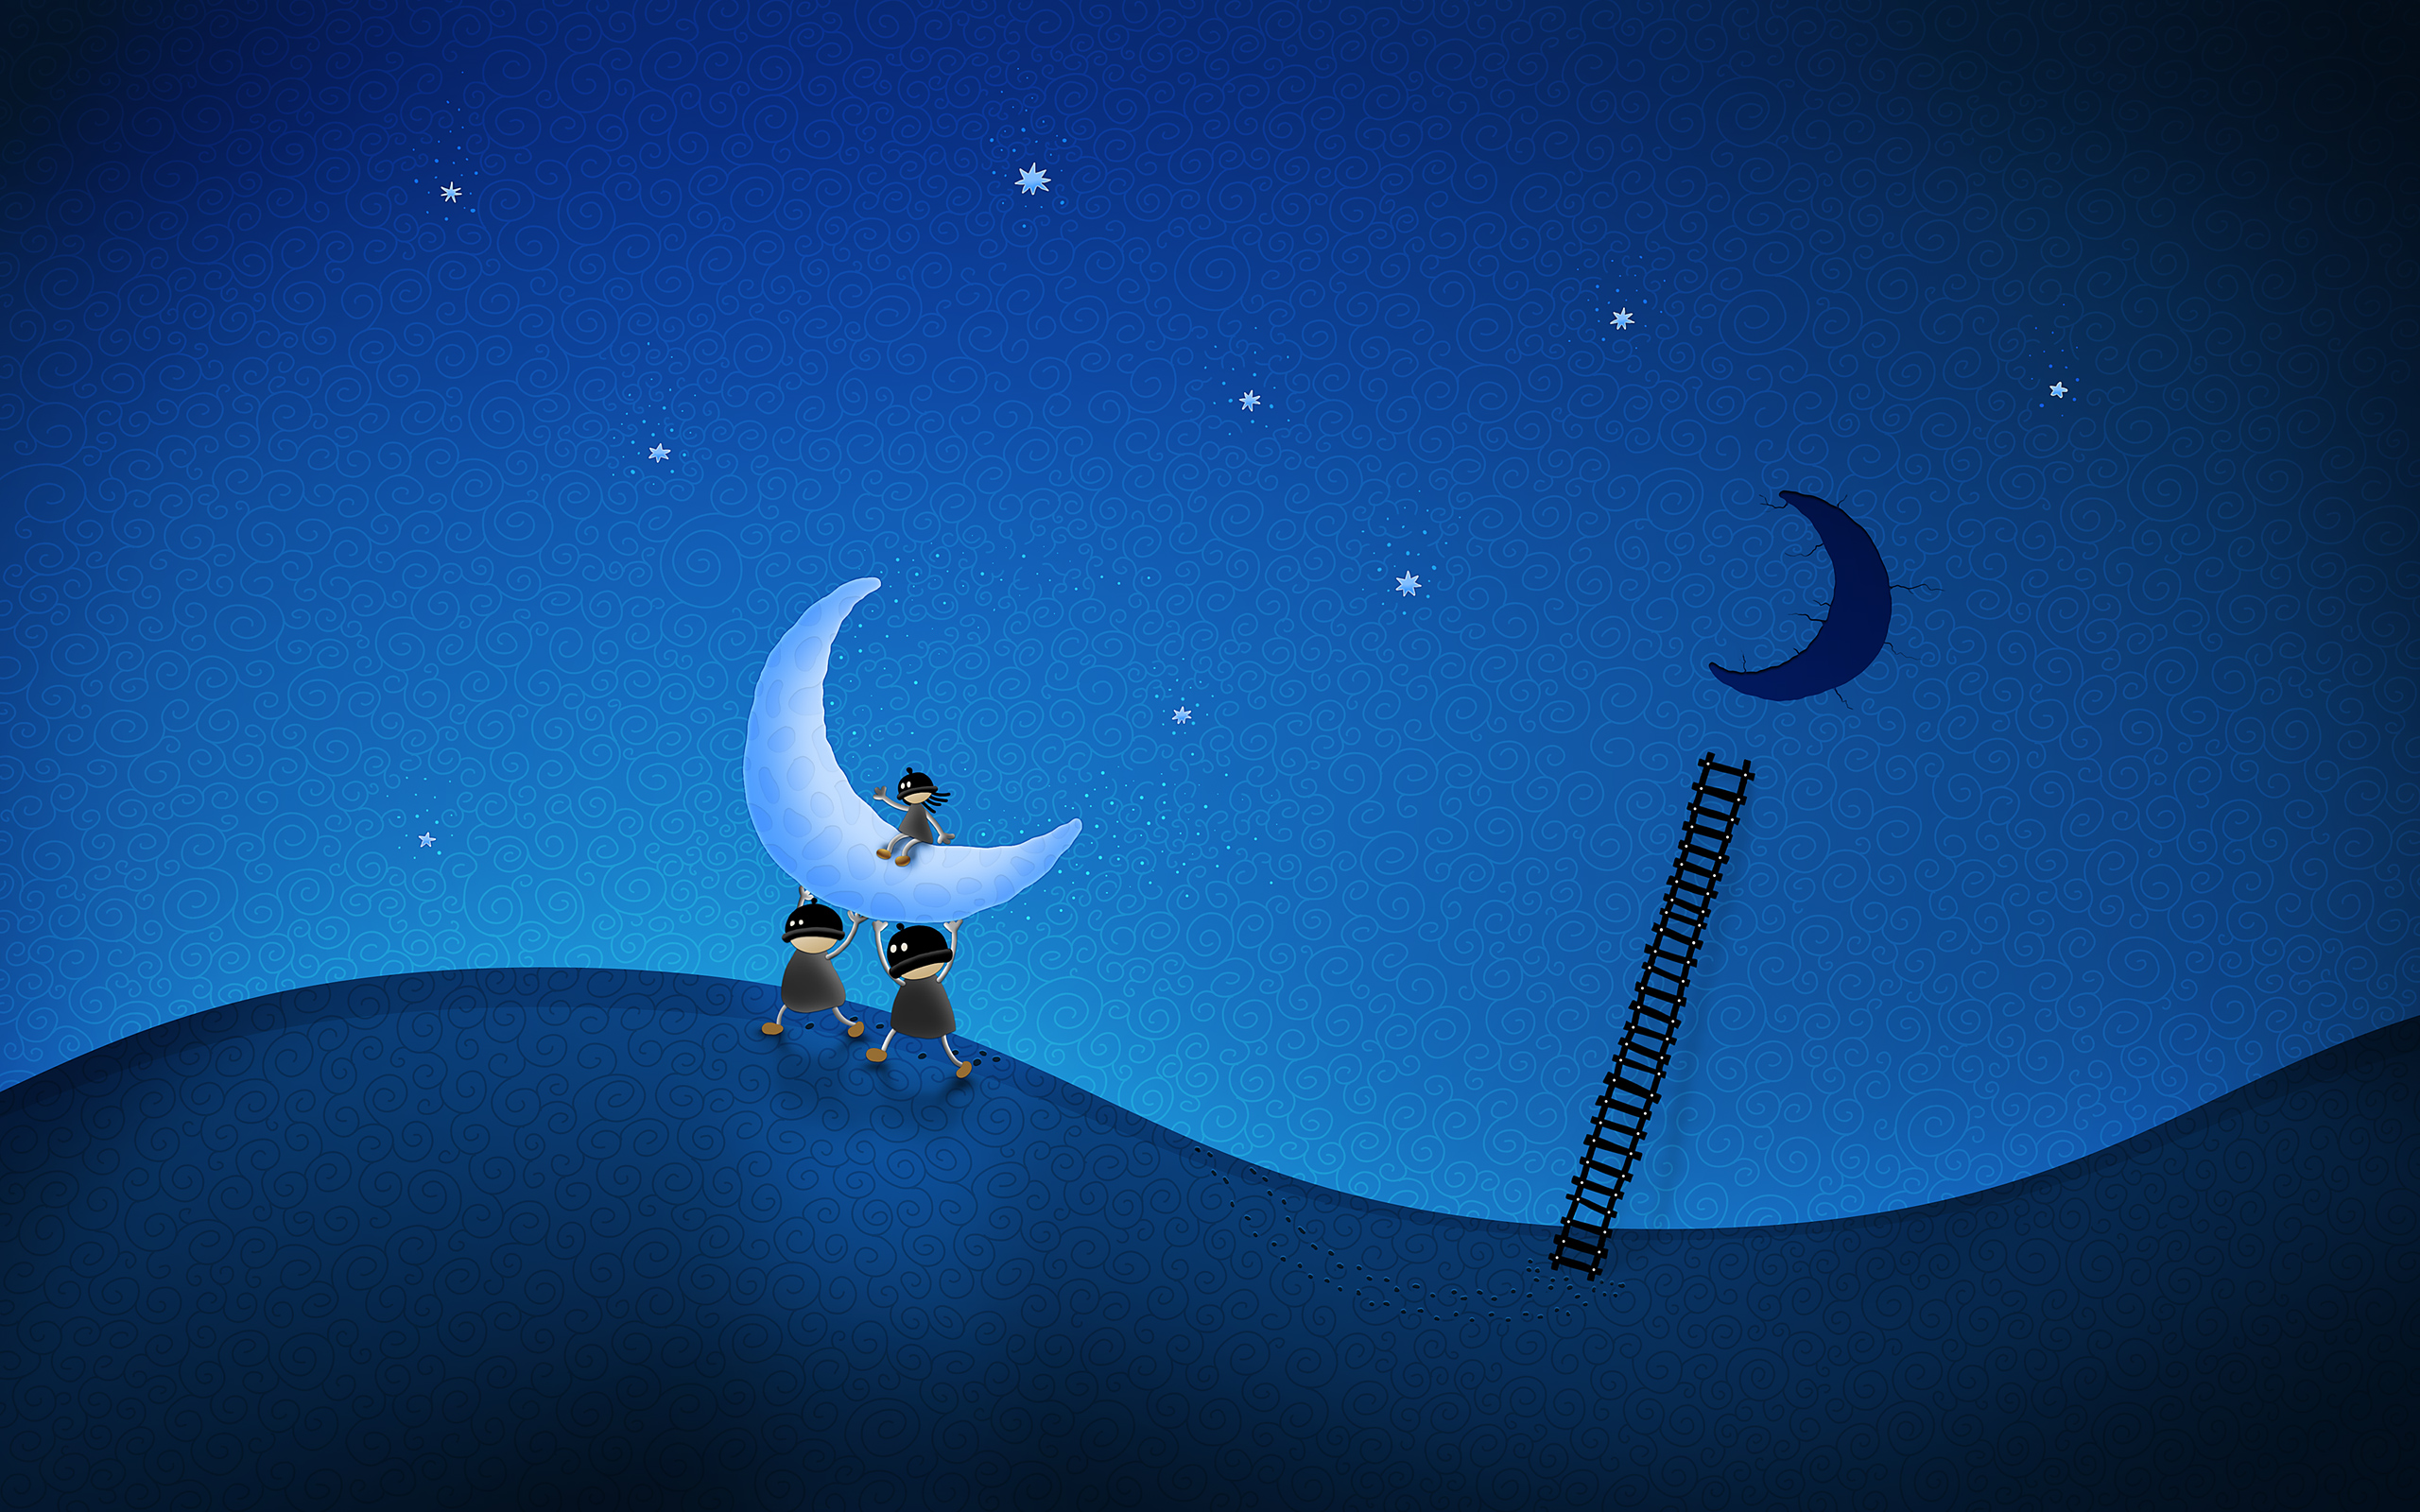 Stole the moon Wallpapers HD Wallpapers 2560x1600